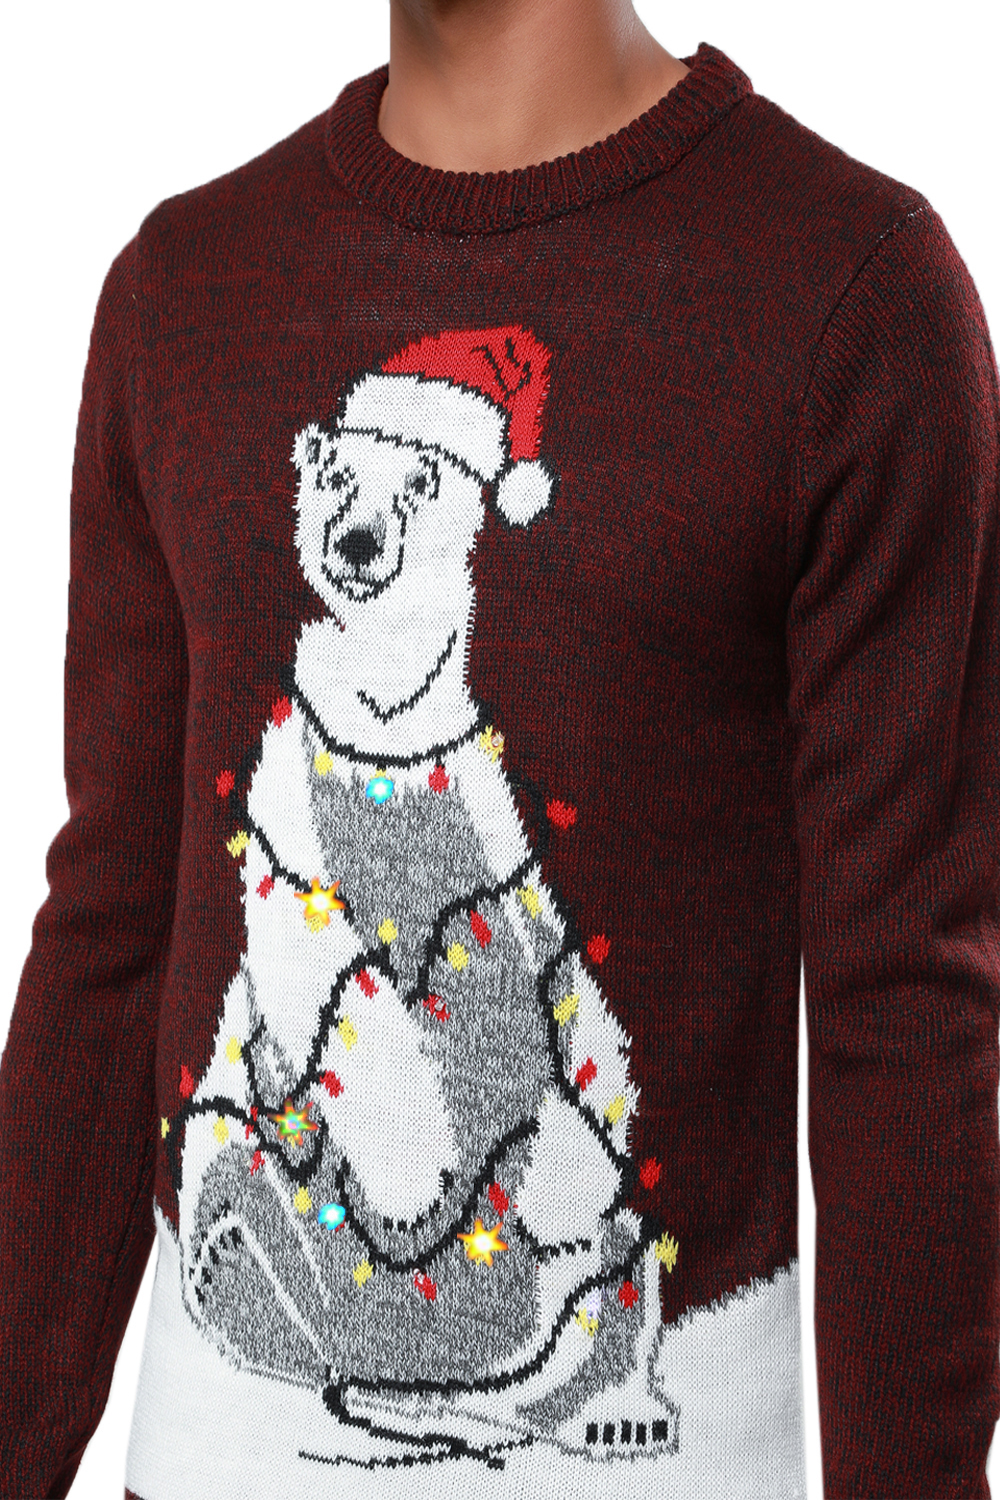 Details About Threadbare Mens Womens Led Light Up 3d Christmas Jumpers Novelty Xmas Sweater